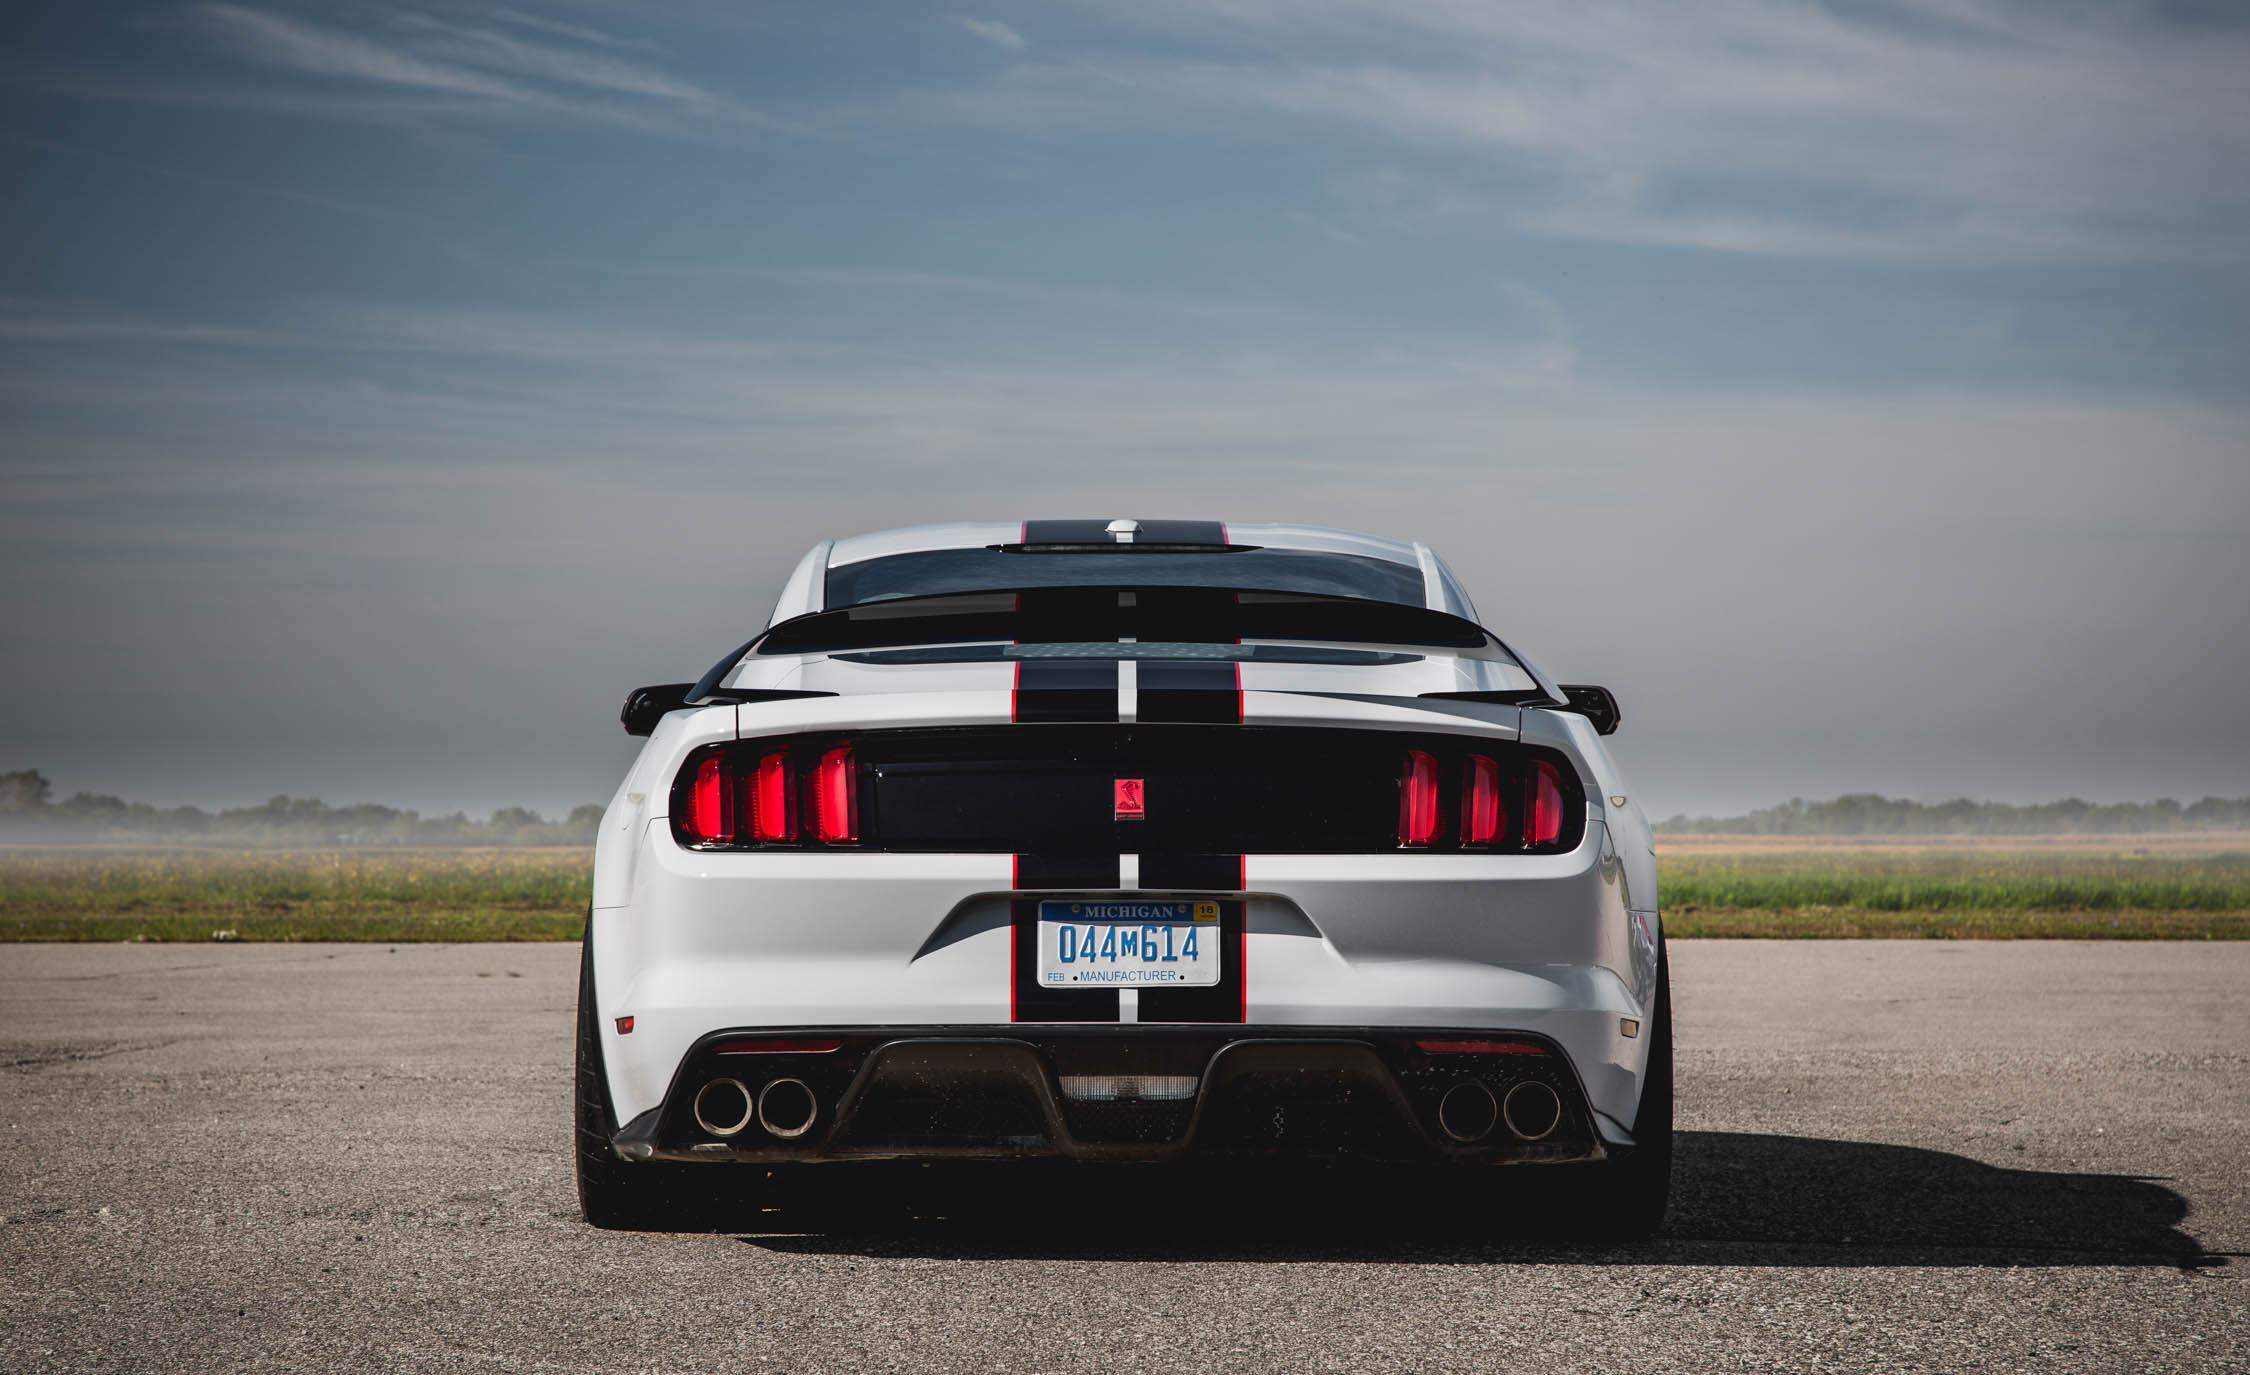 2016 ford mustang shelby gt350r exterior rear view 7858 cars performance reviews and test drive. Black Bedroom Furniture Sets. Home Design Ideas